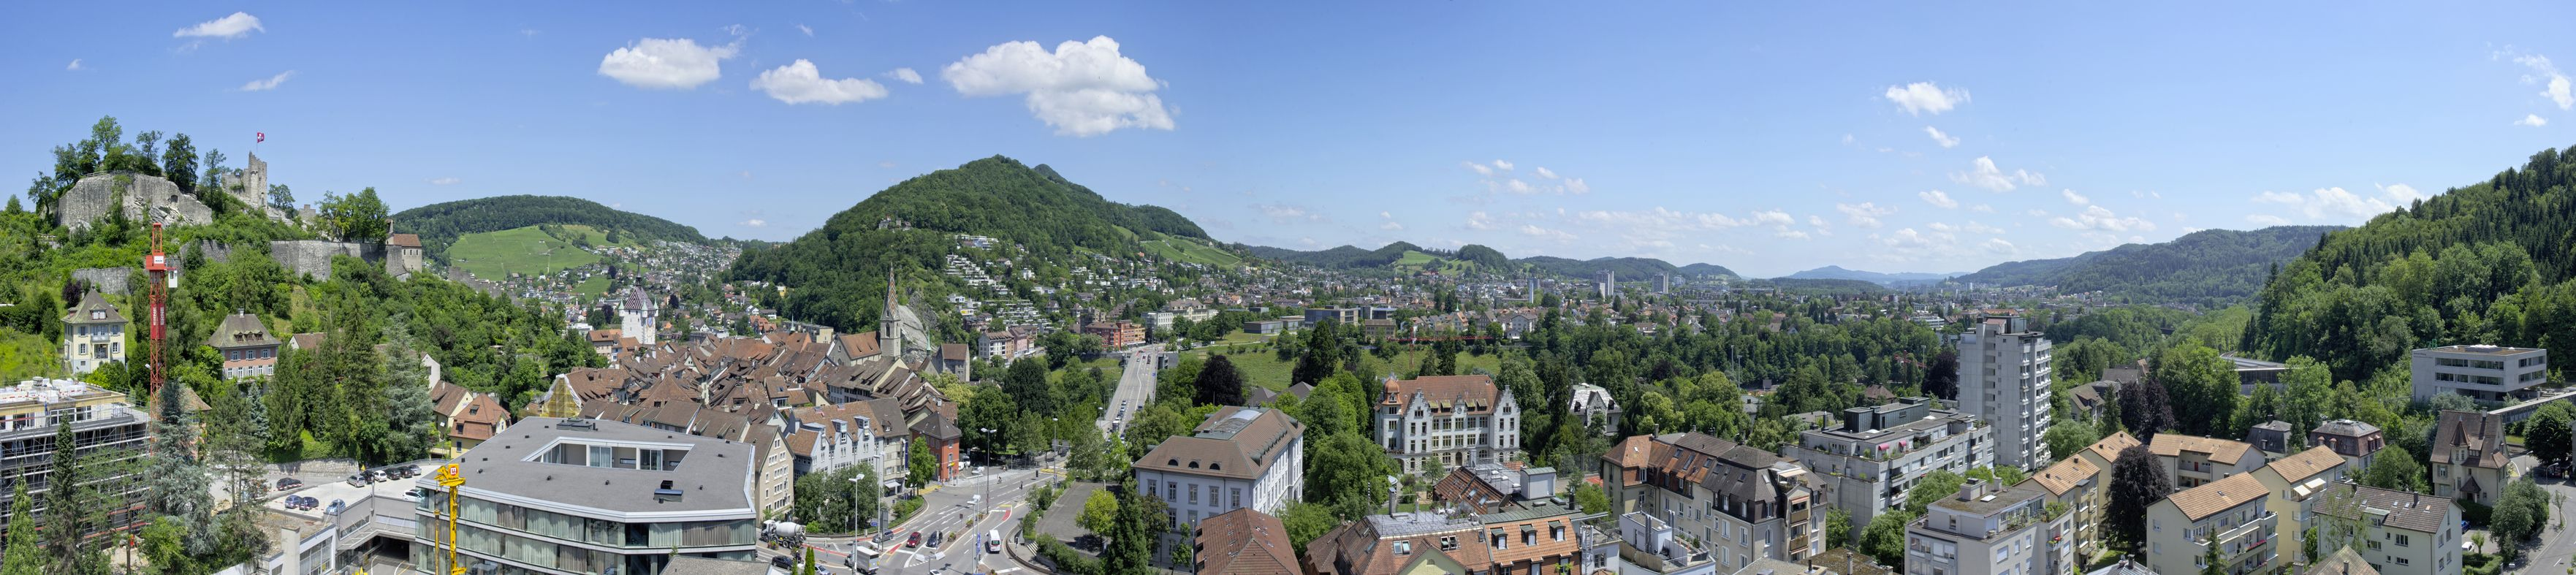 Panorama of the city Baden